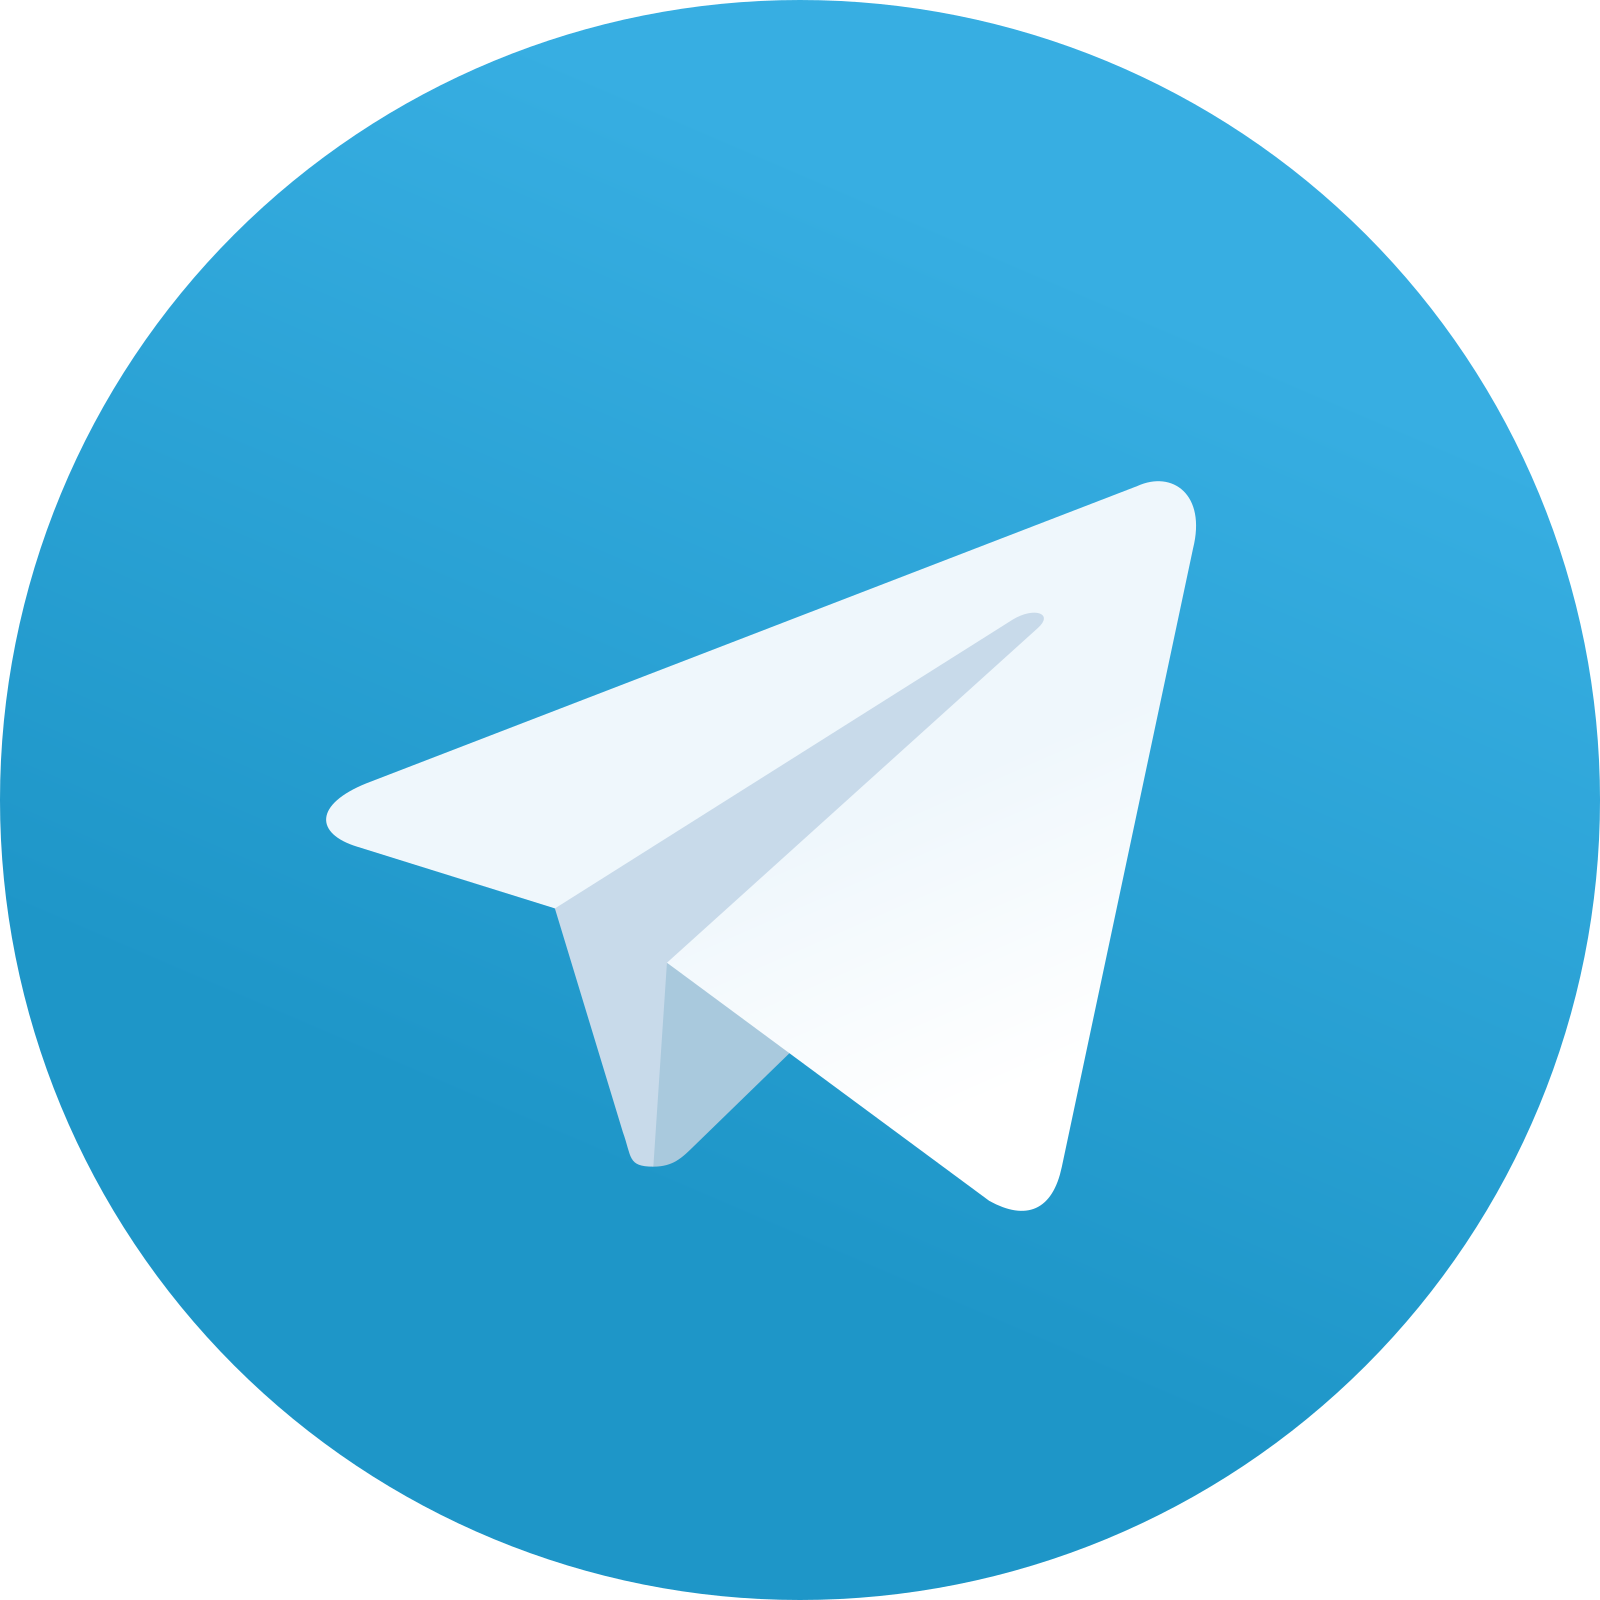 telegram logo 2 - Telegram Logo